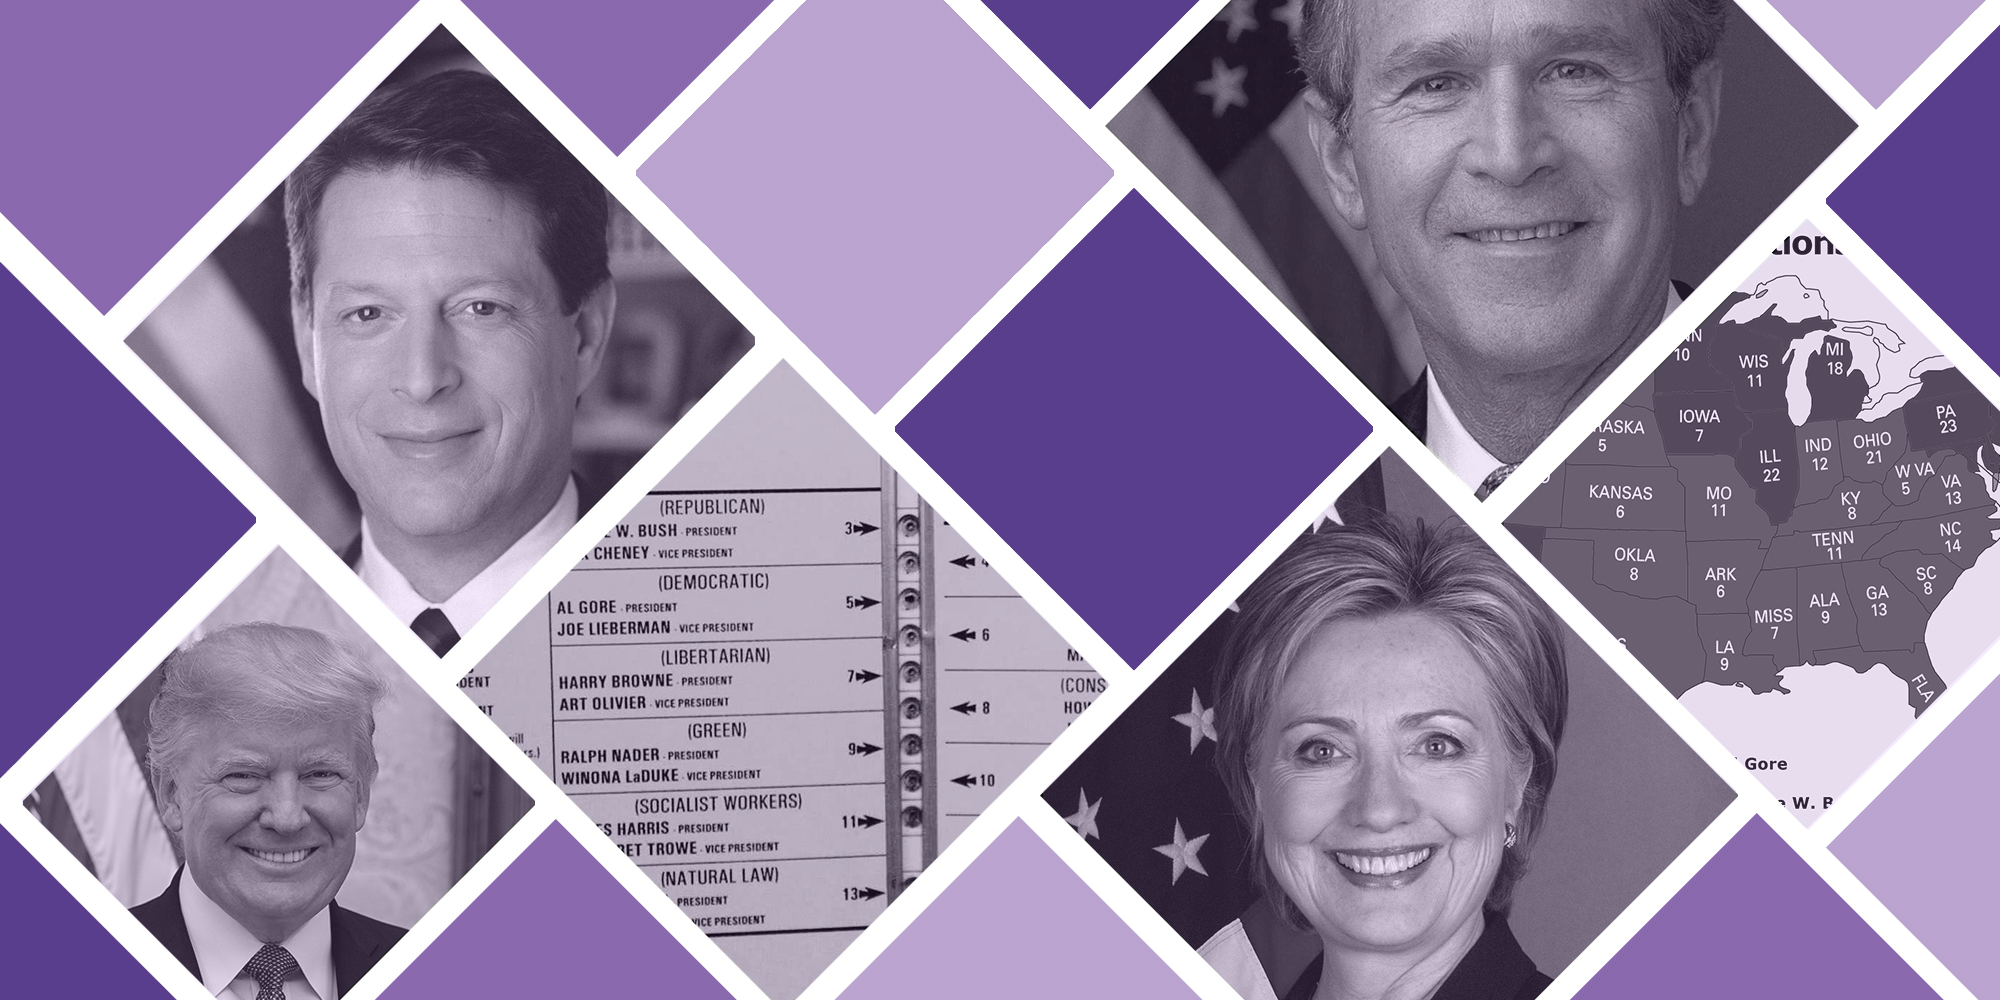 Reconsidering the presidential recount system